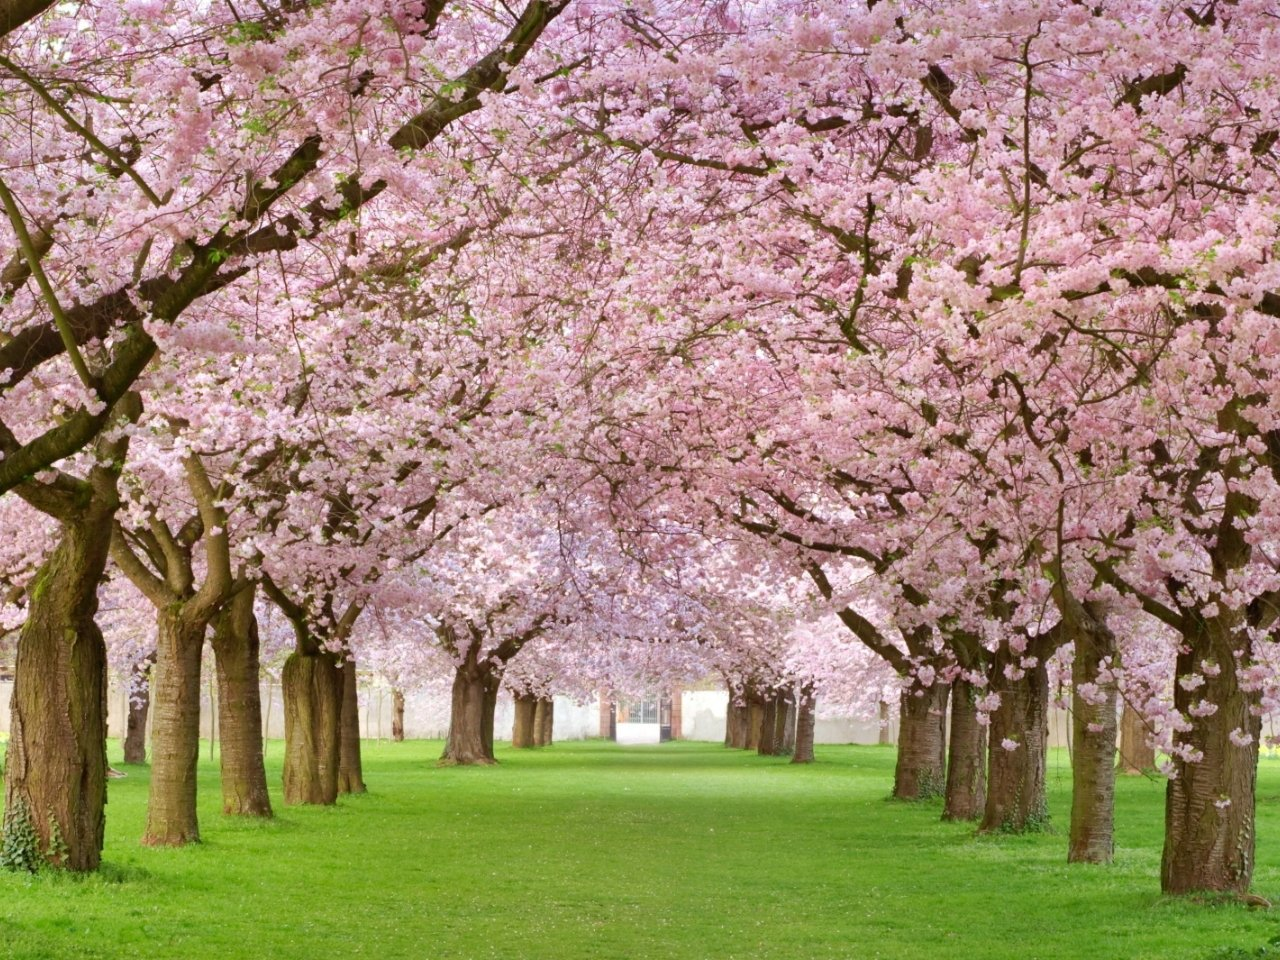 Spring Widescreen Wallpaper Hd Wallpapers 1280x960